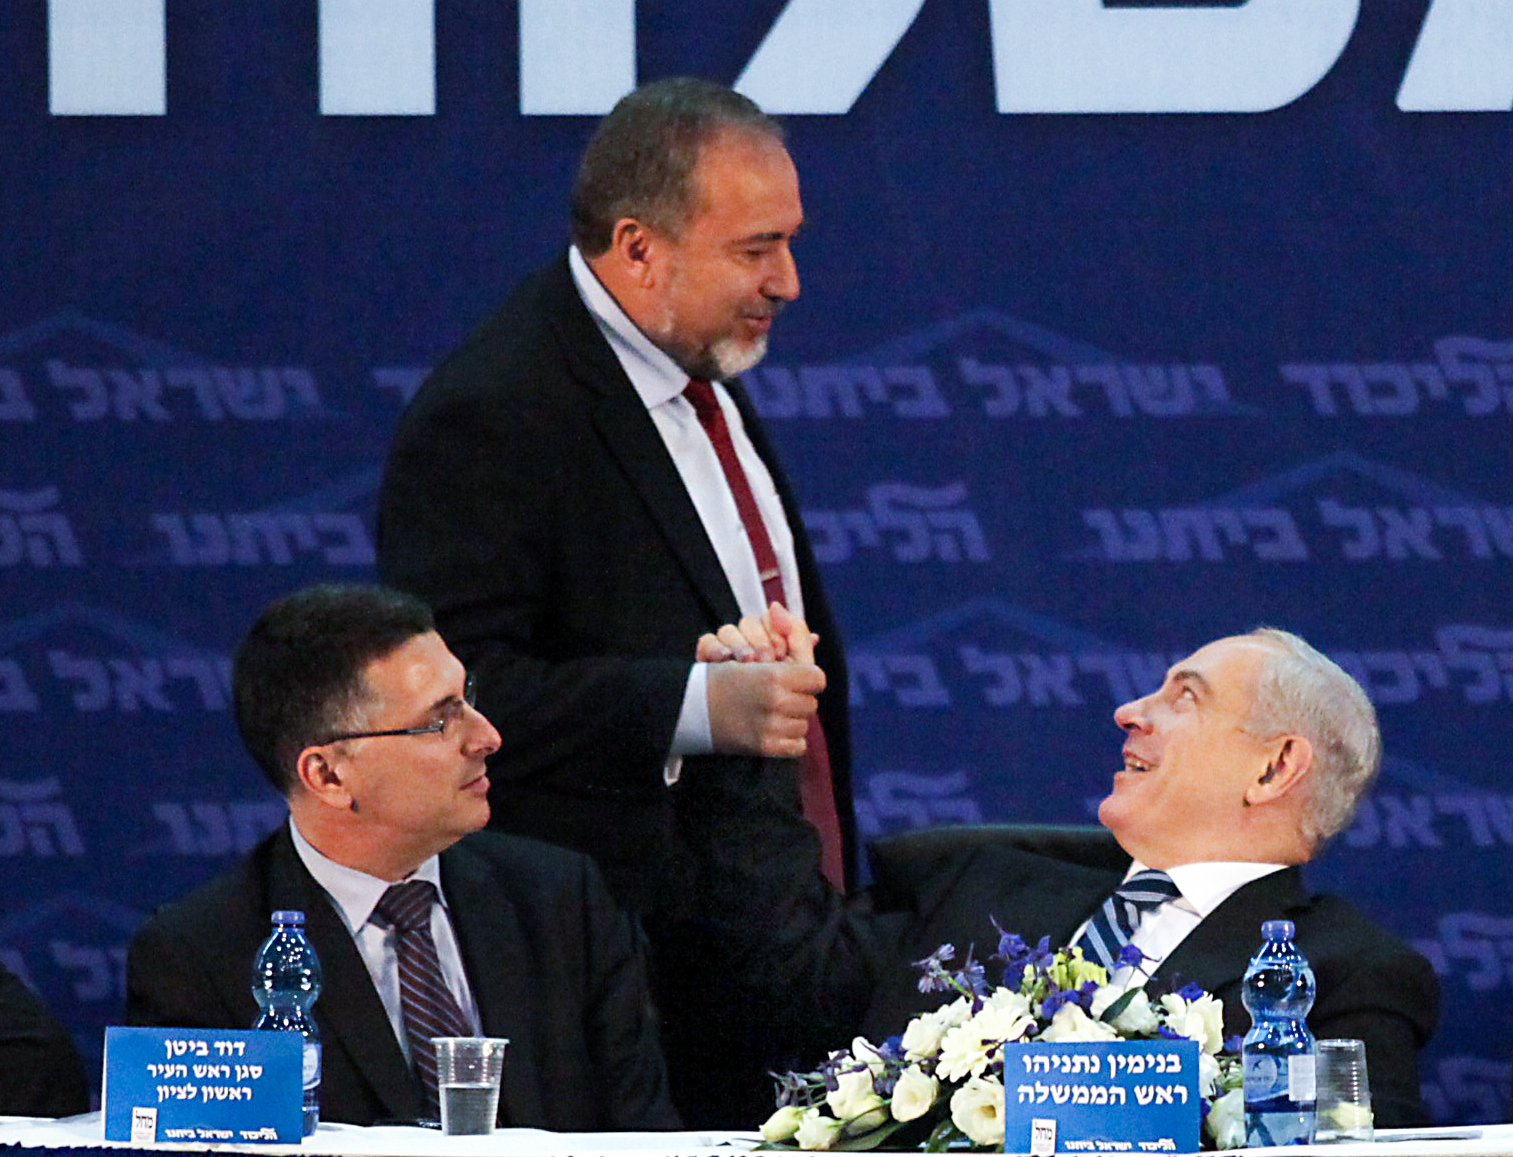 Israel's Prime Minister and leader of the Likud party Benjamin Netanyahu (R), leader of the Israel Beiteinu party Avigdor Liberman (C) and Minister of Education Gideon Sa'ar present their joint campaign prior to the Israeli elections, in Rishon LeZion on January 10, 2013. Photo by Gideon Markowicz/Flas90